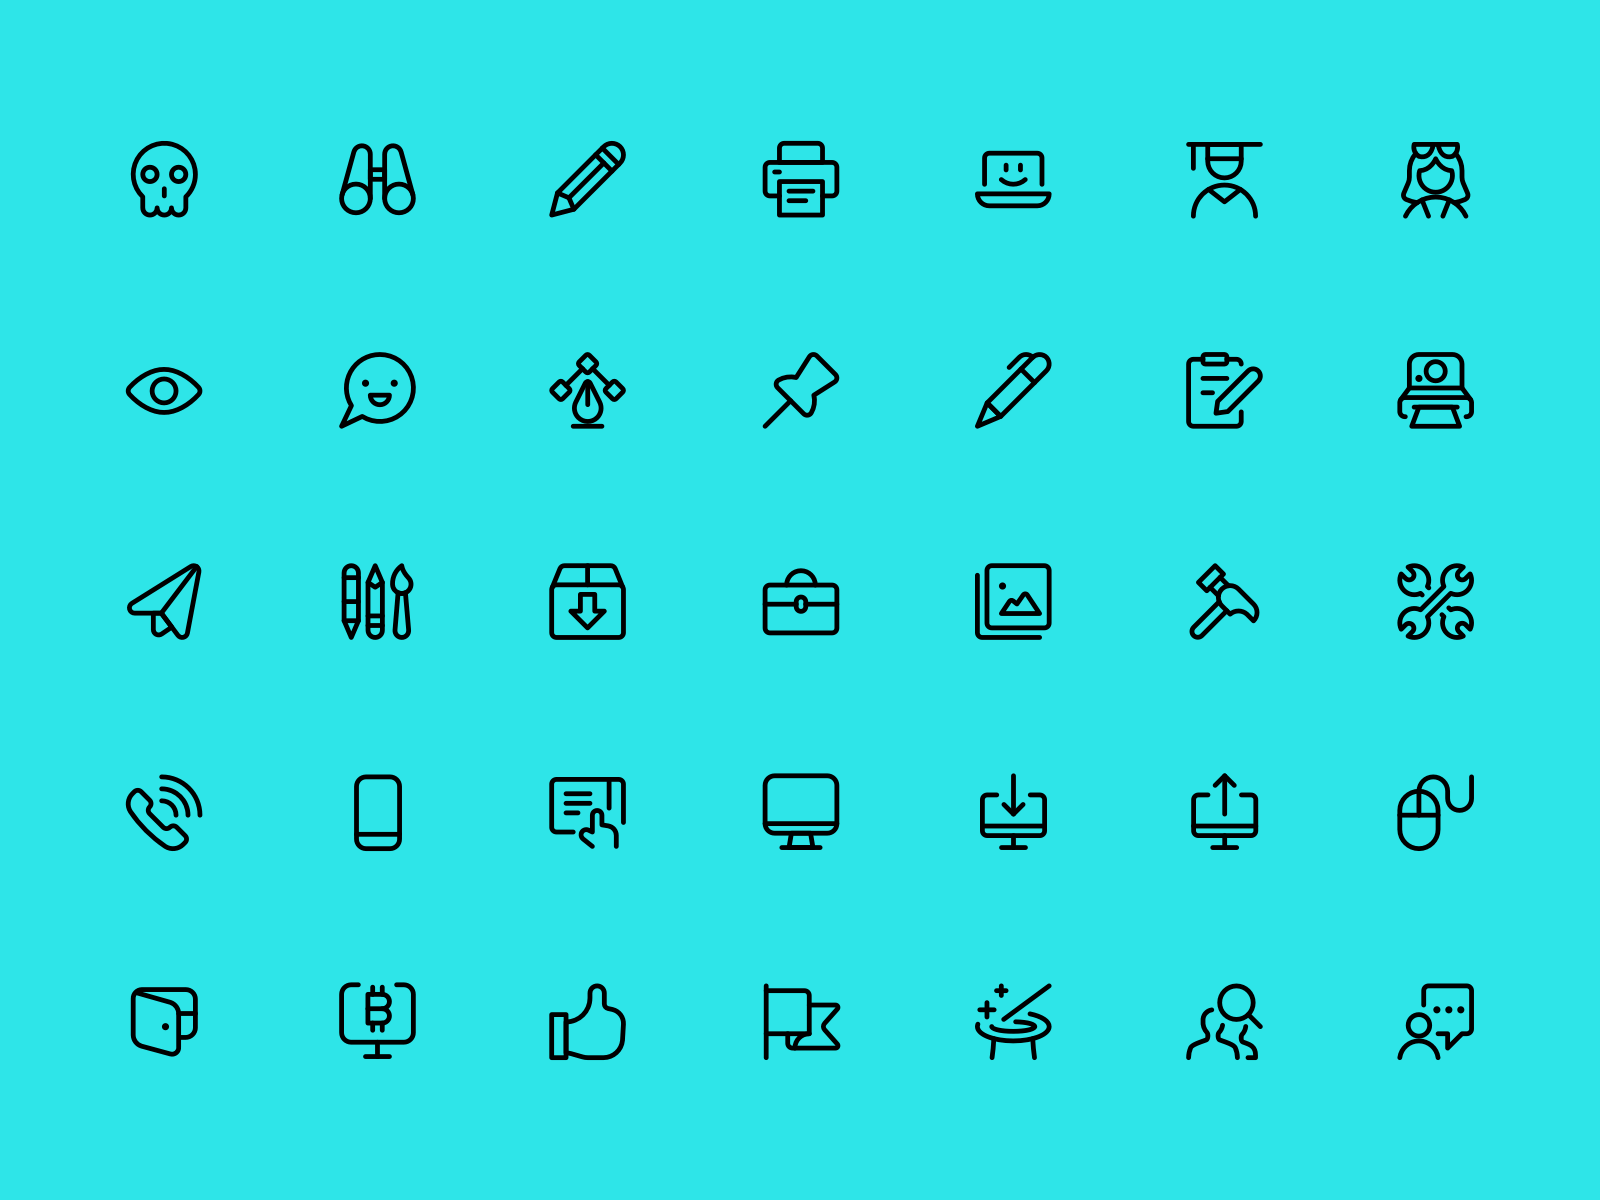 Selection of some icons from the Streamline 3.0 Icon Pack